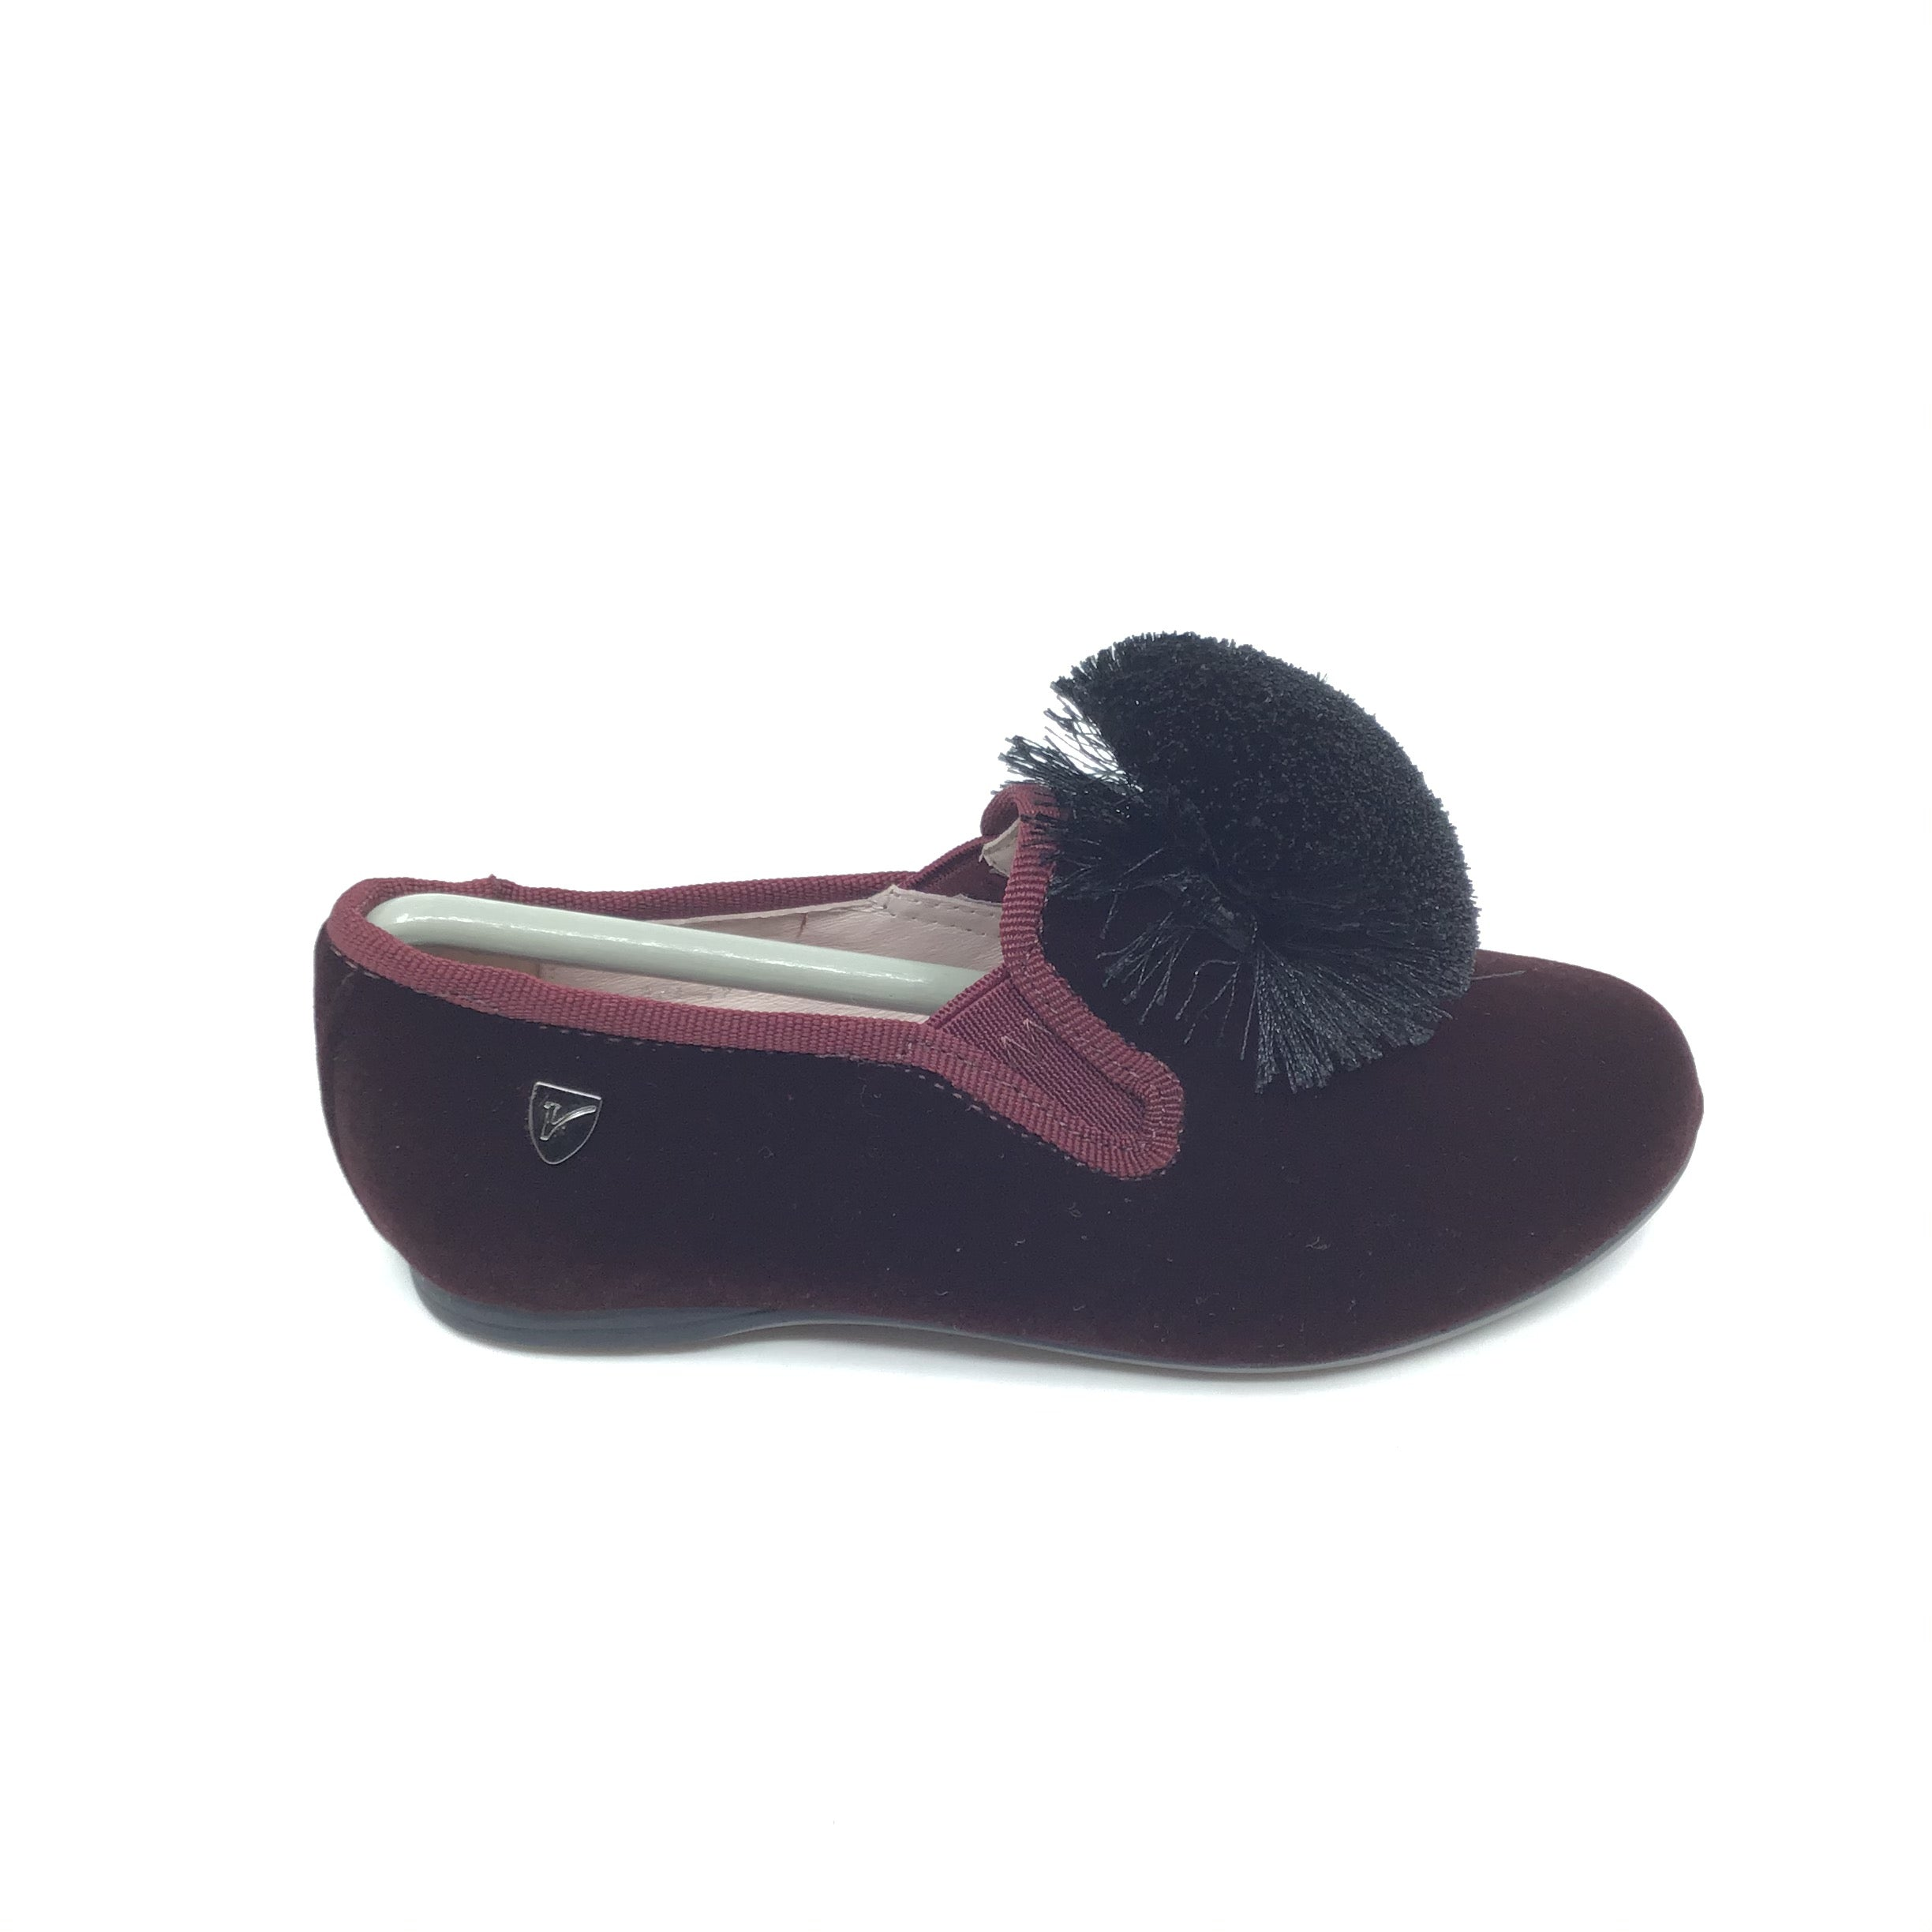 Venettini Bordeaux Velvet Slip On with Pom Pom